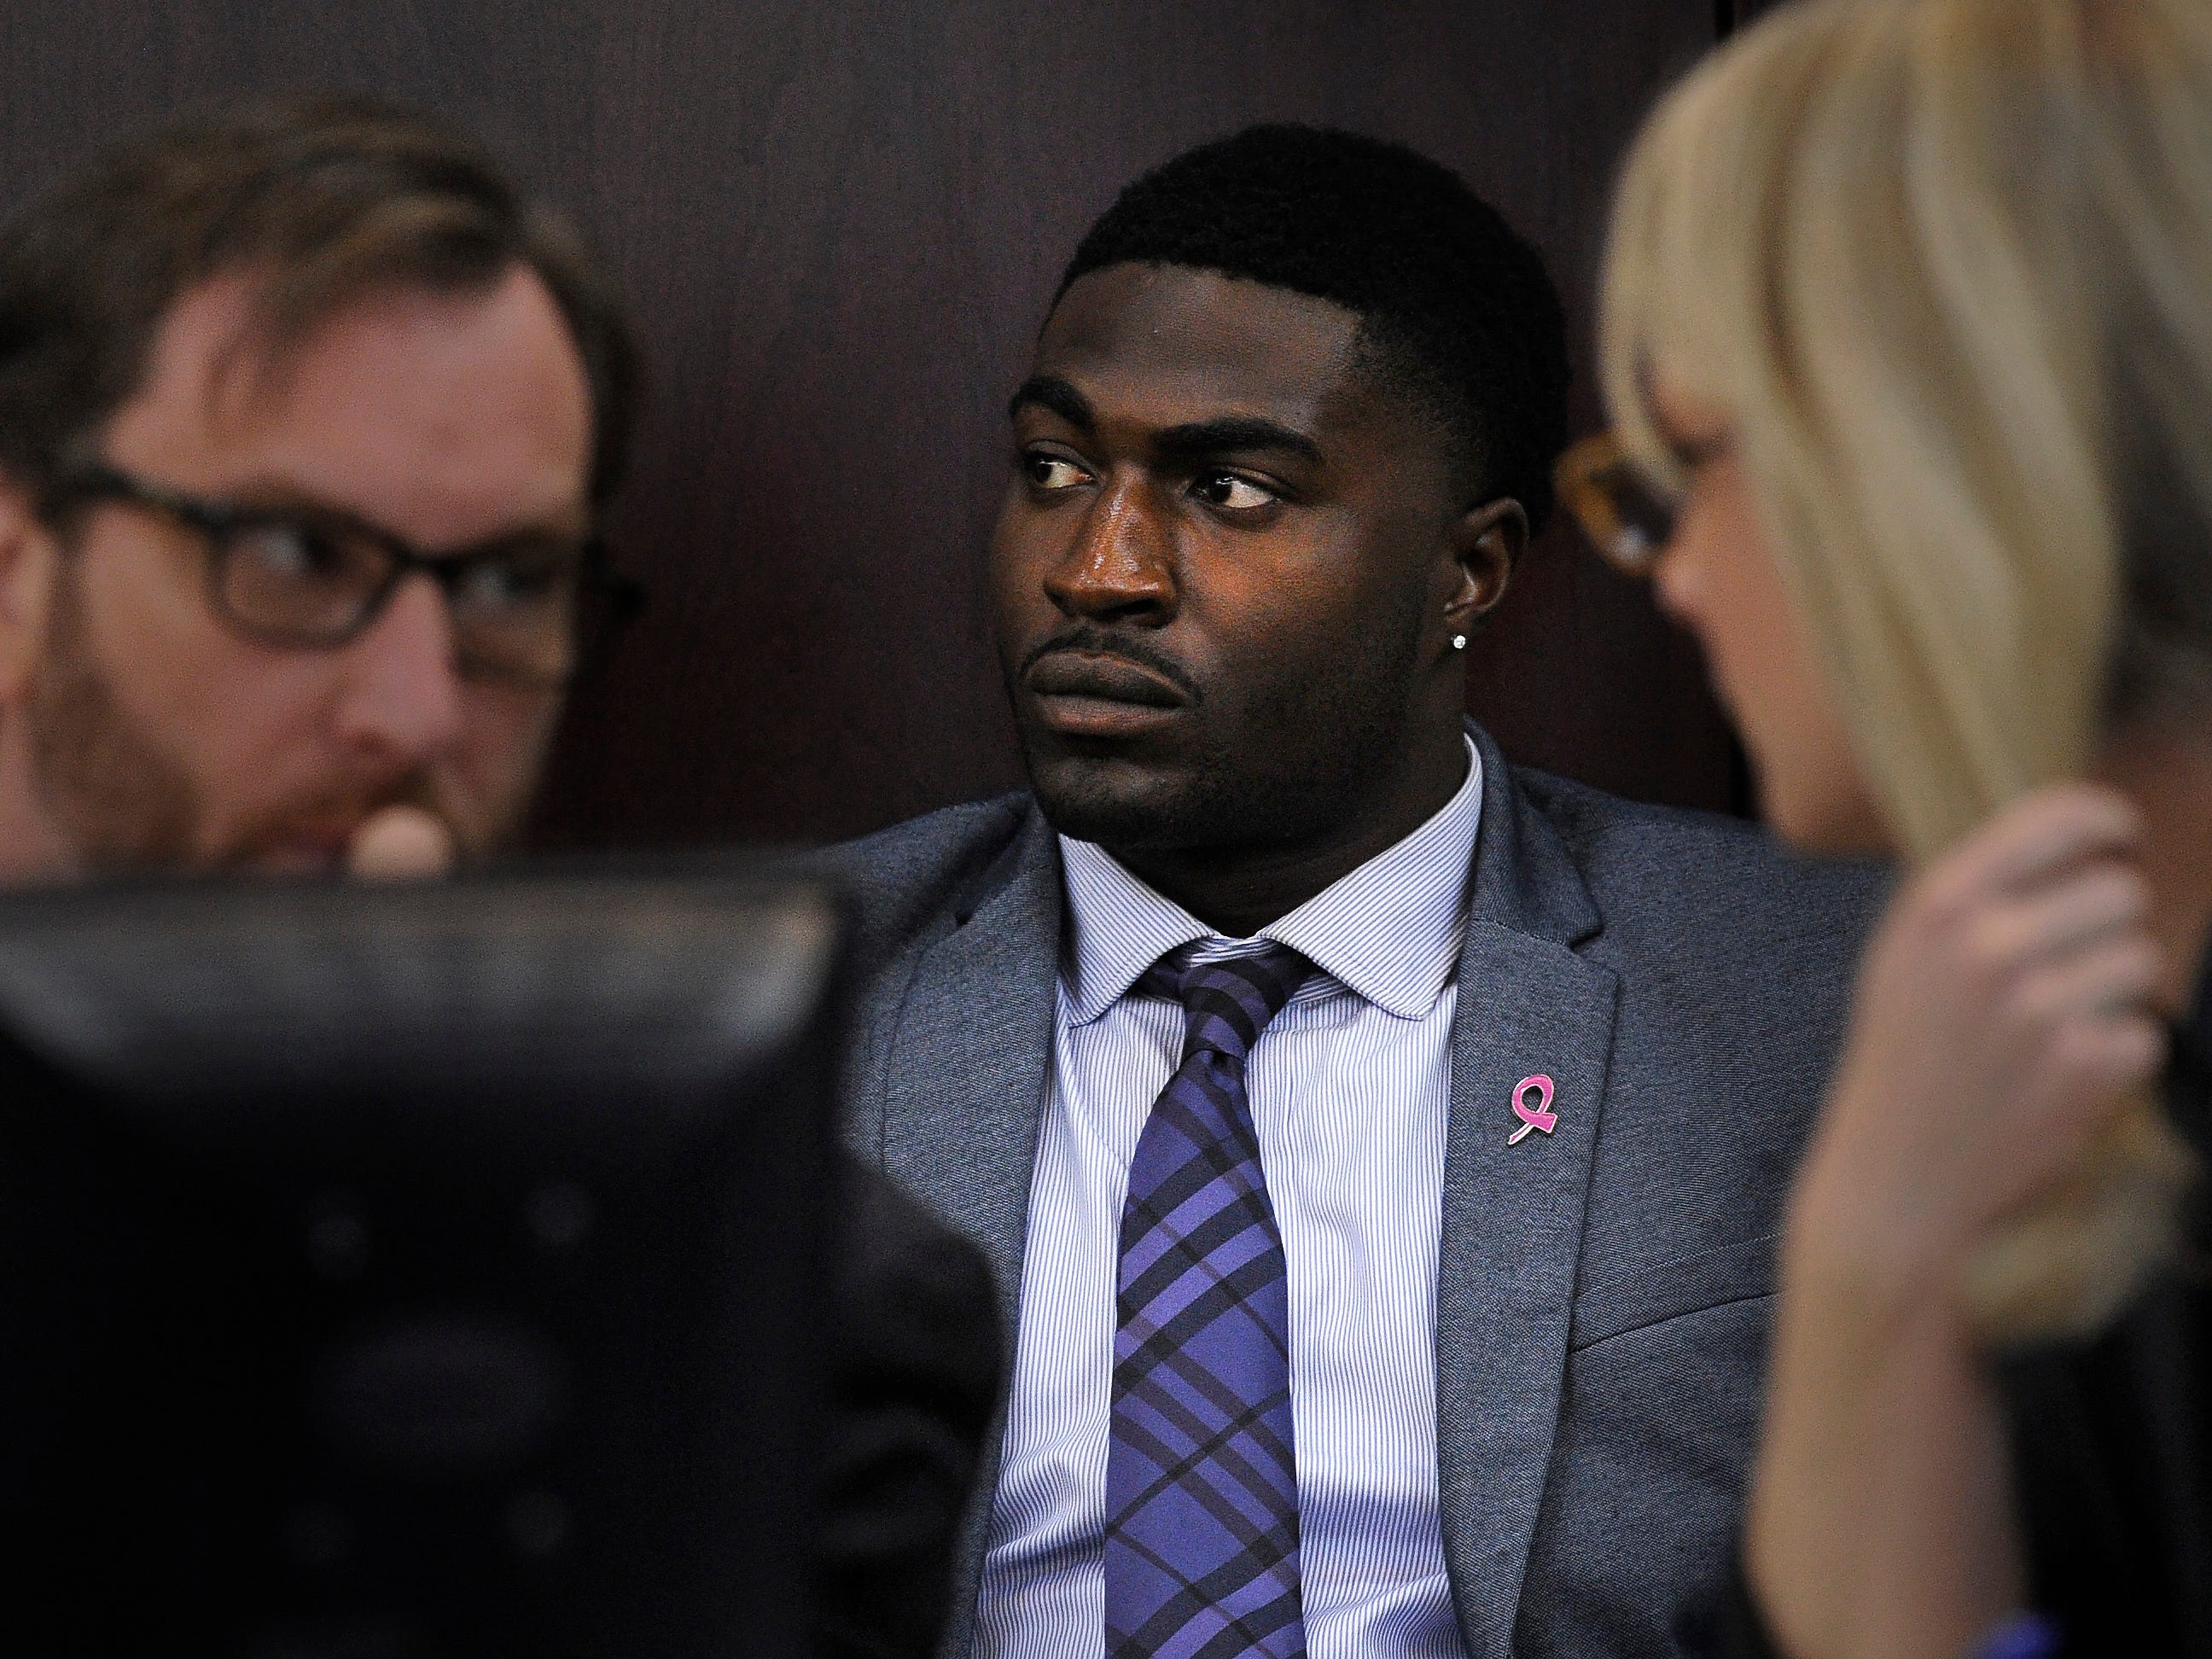 Corey Batey listens as attorneys challenge the tactics of police in the Vanderbilt rape investigation on Wednesday.